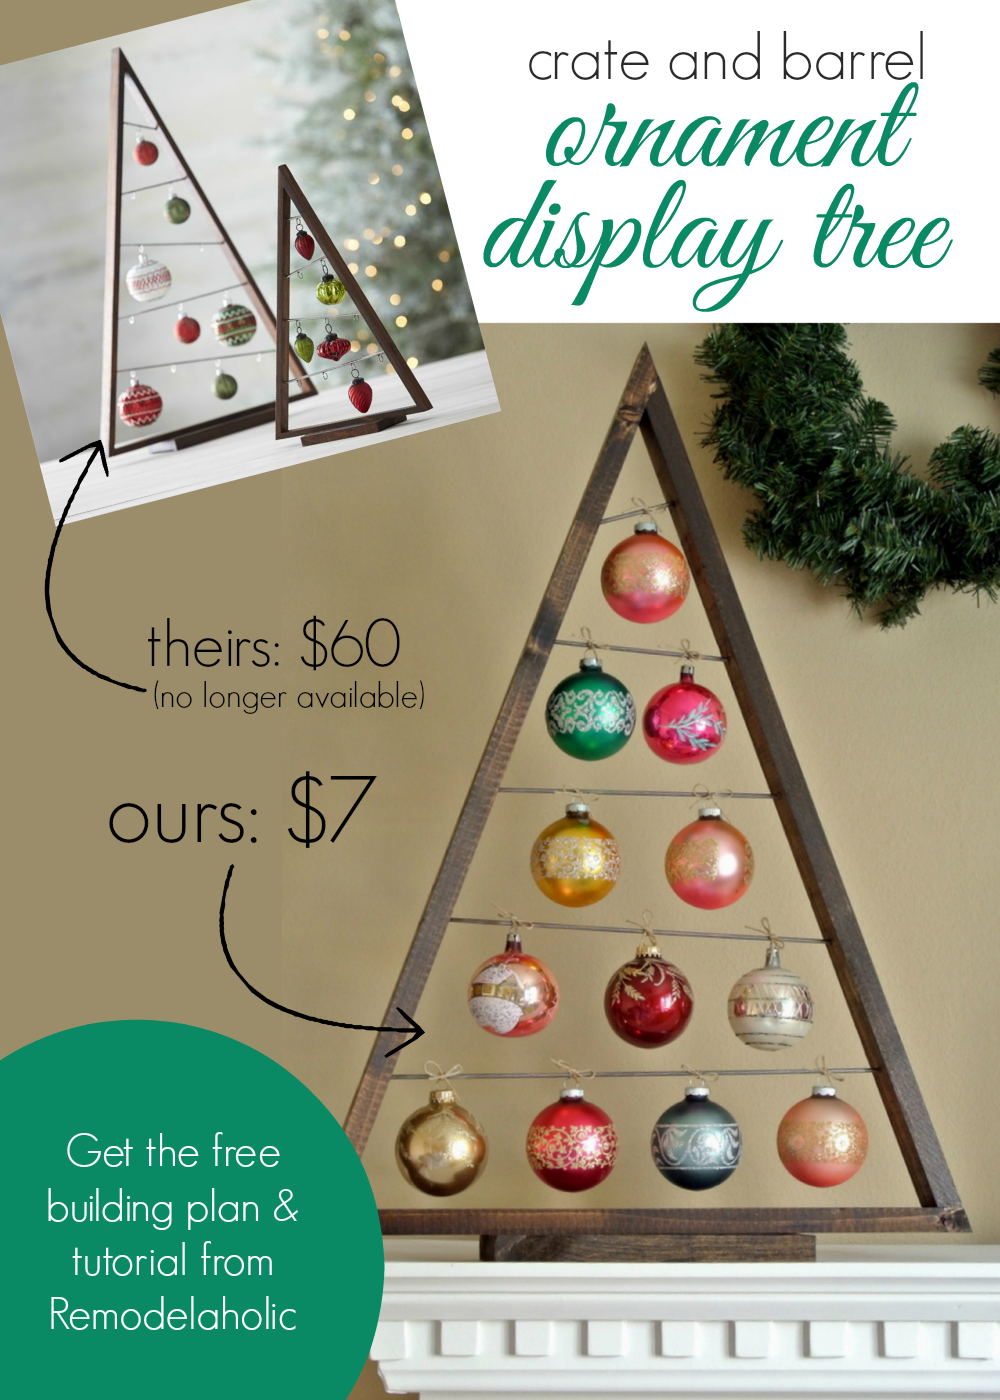 DIY Ornament Display Tree | Remodelaholic | Bloglovin'